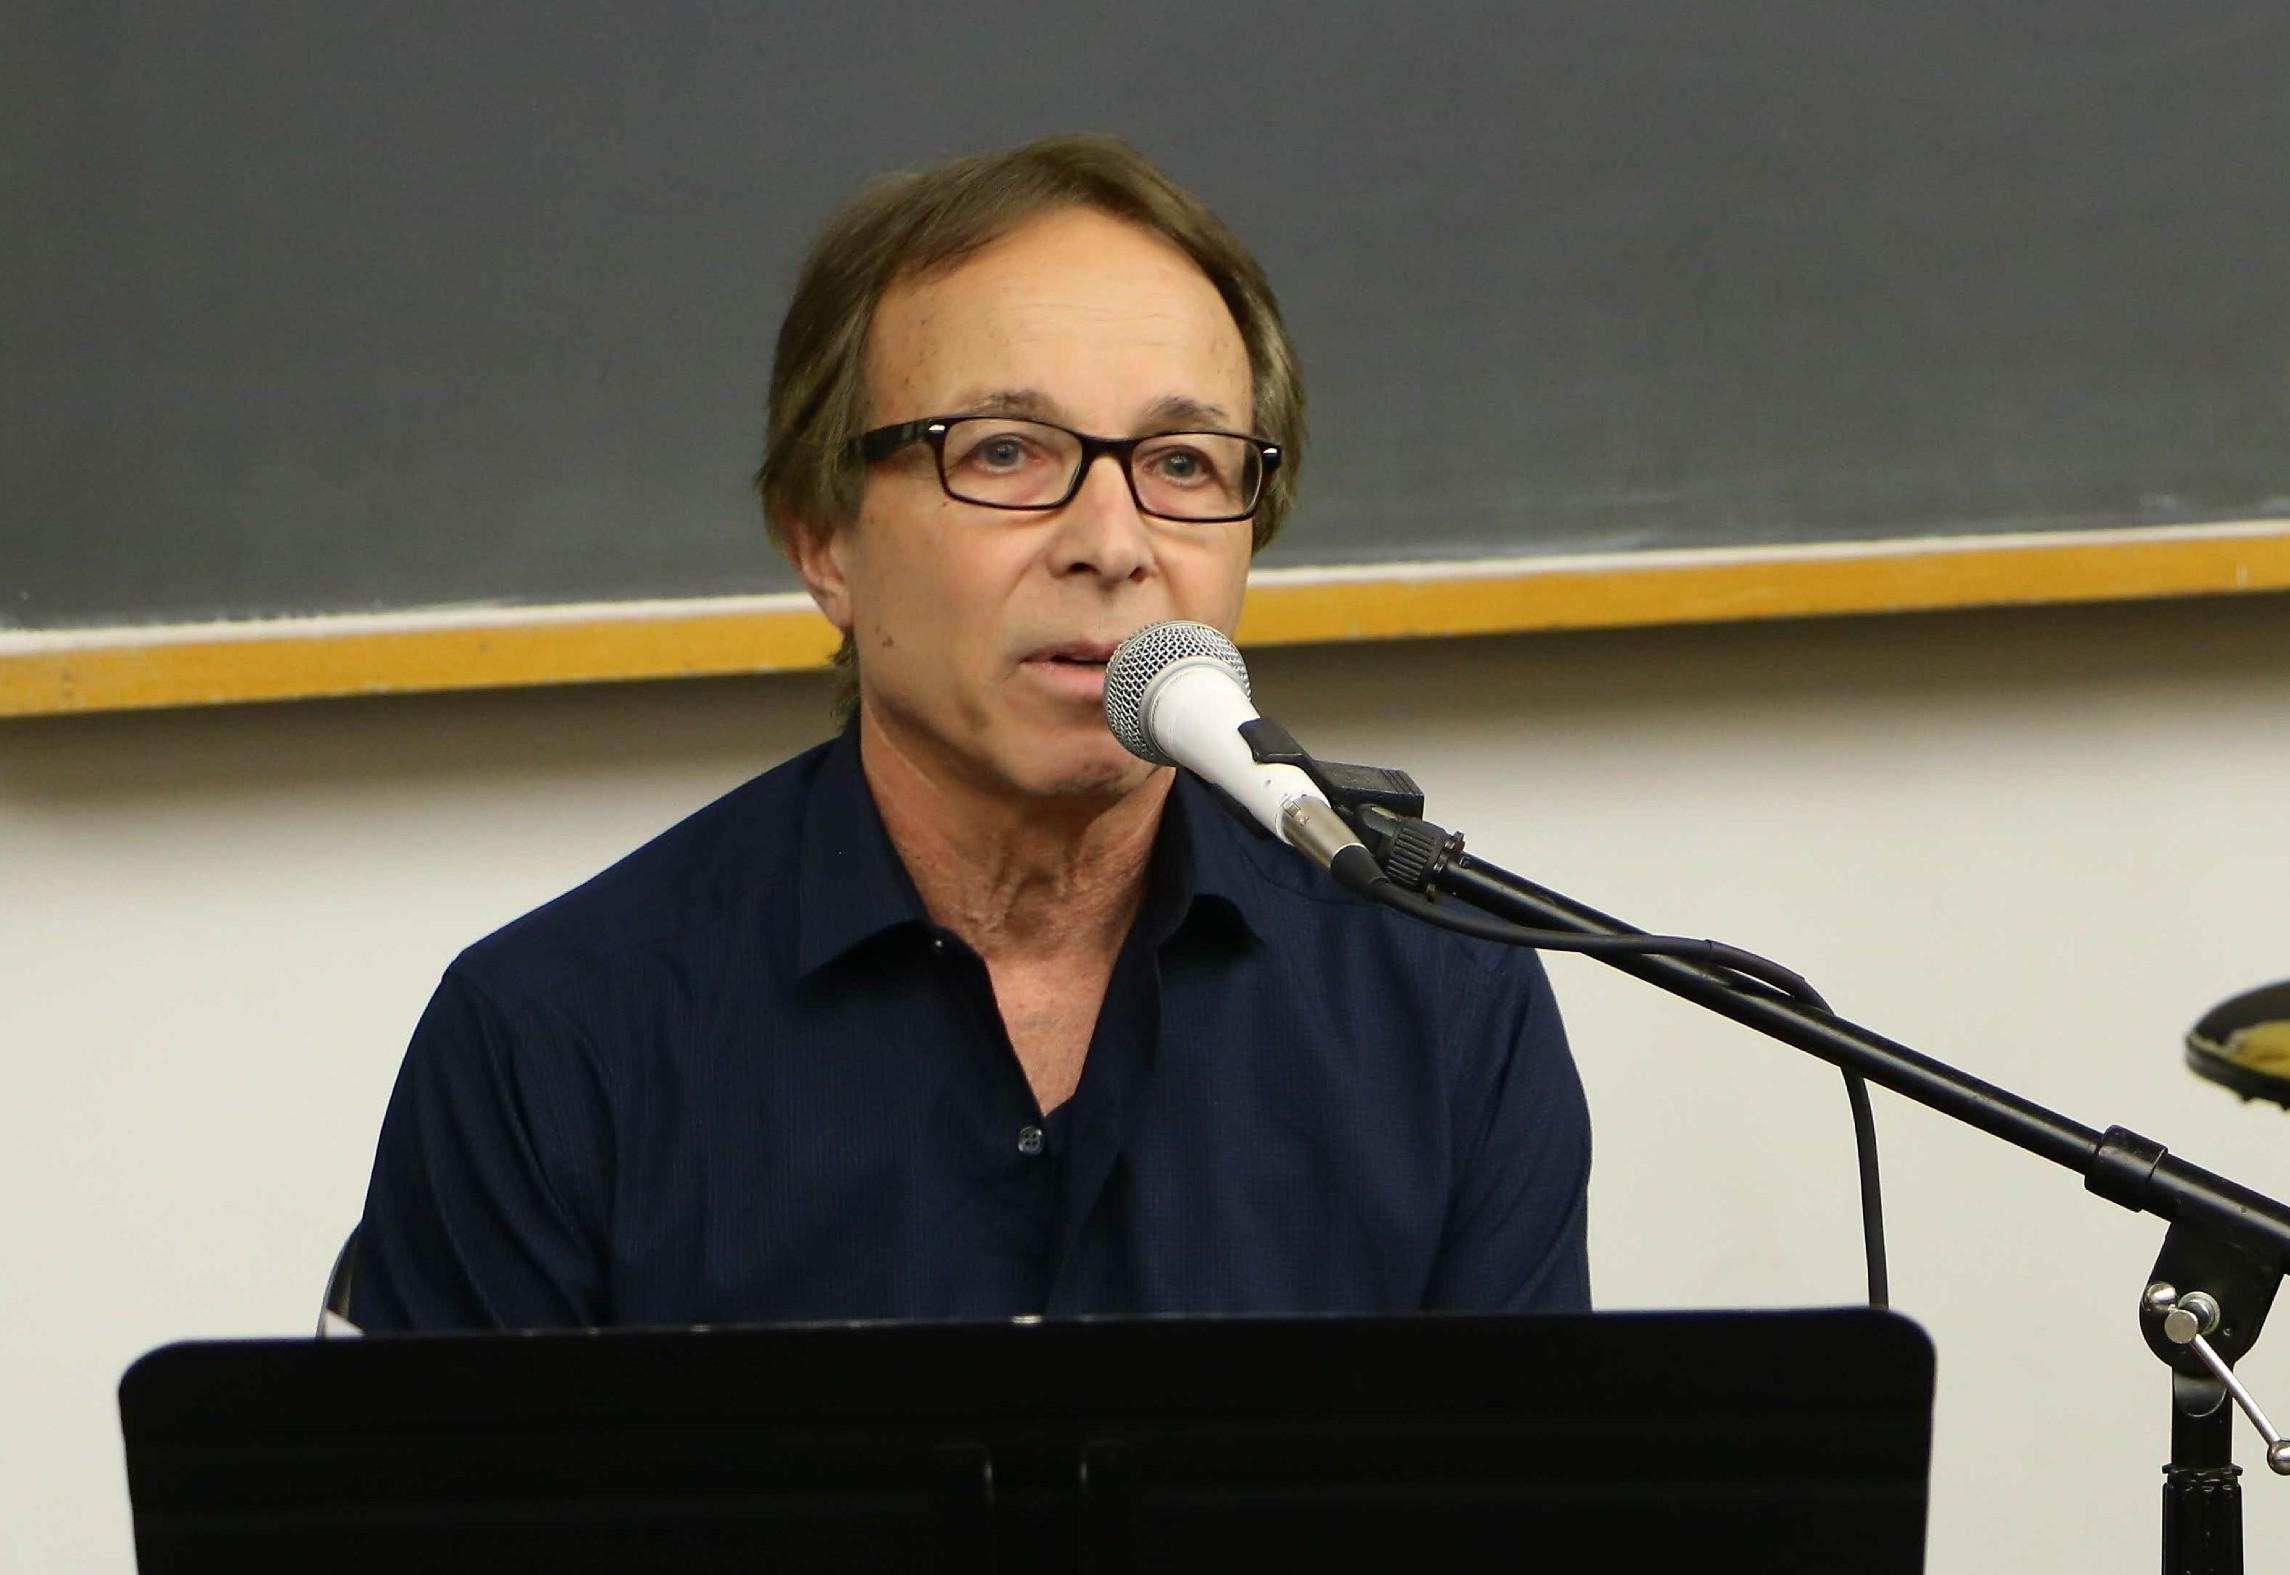 Tom Rizzo to discuss how musicians, producers can 'tune up' their financial future: Fredonia University Presentation Performance Thumbnail